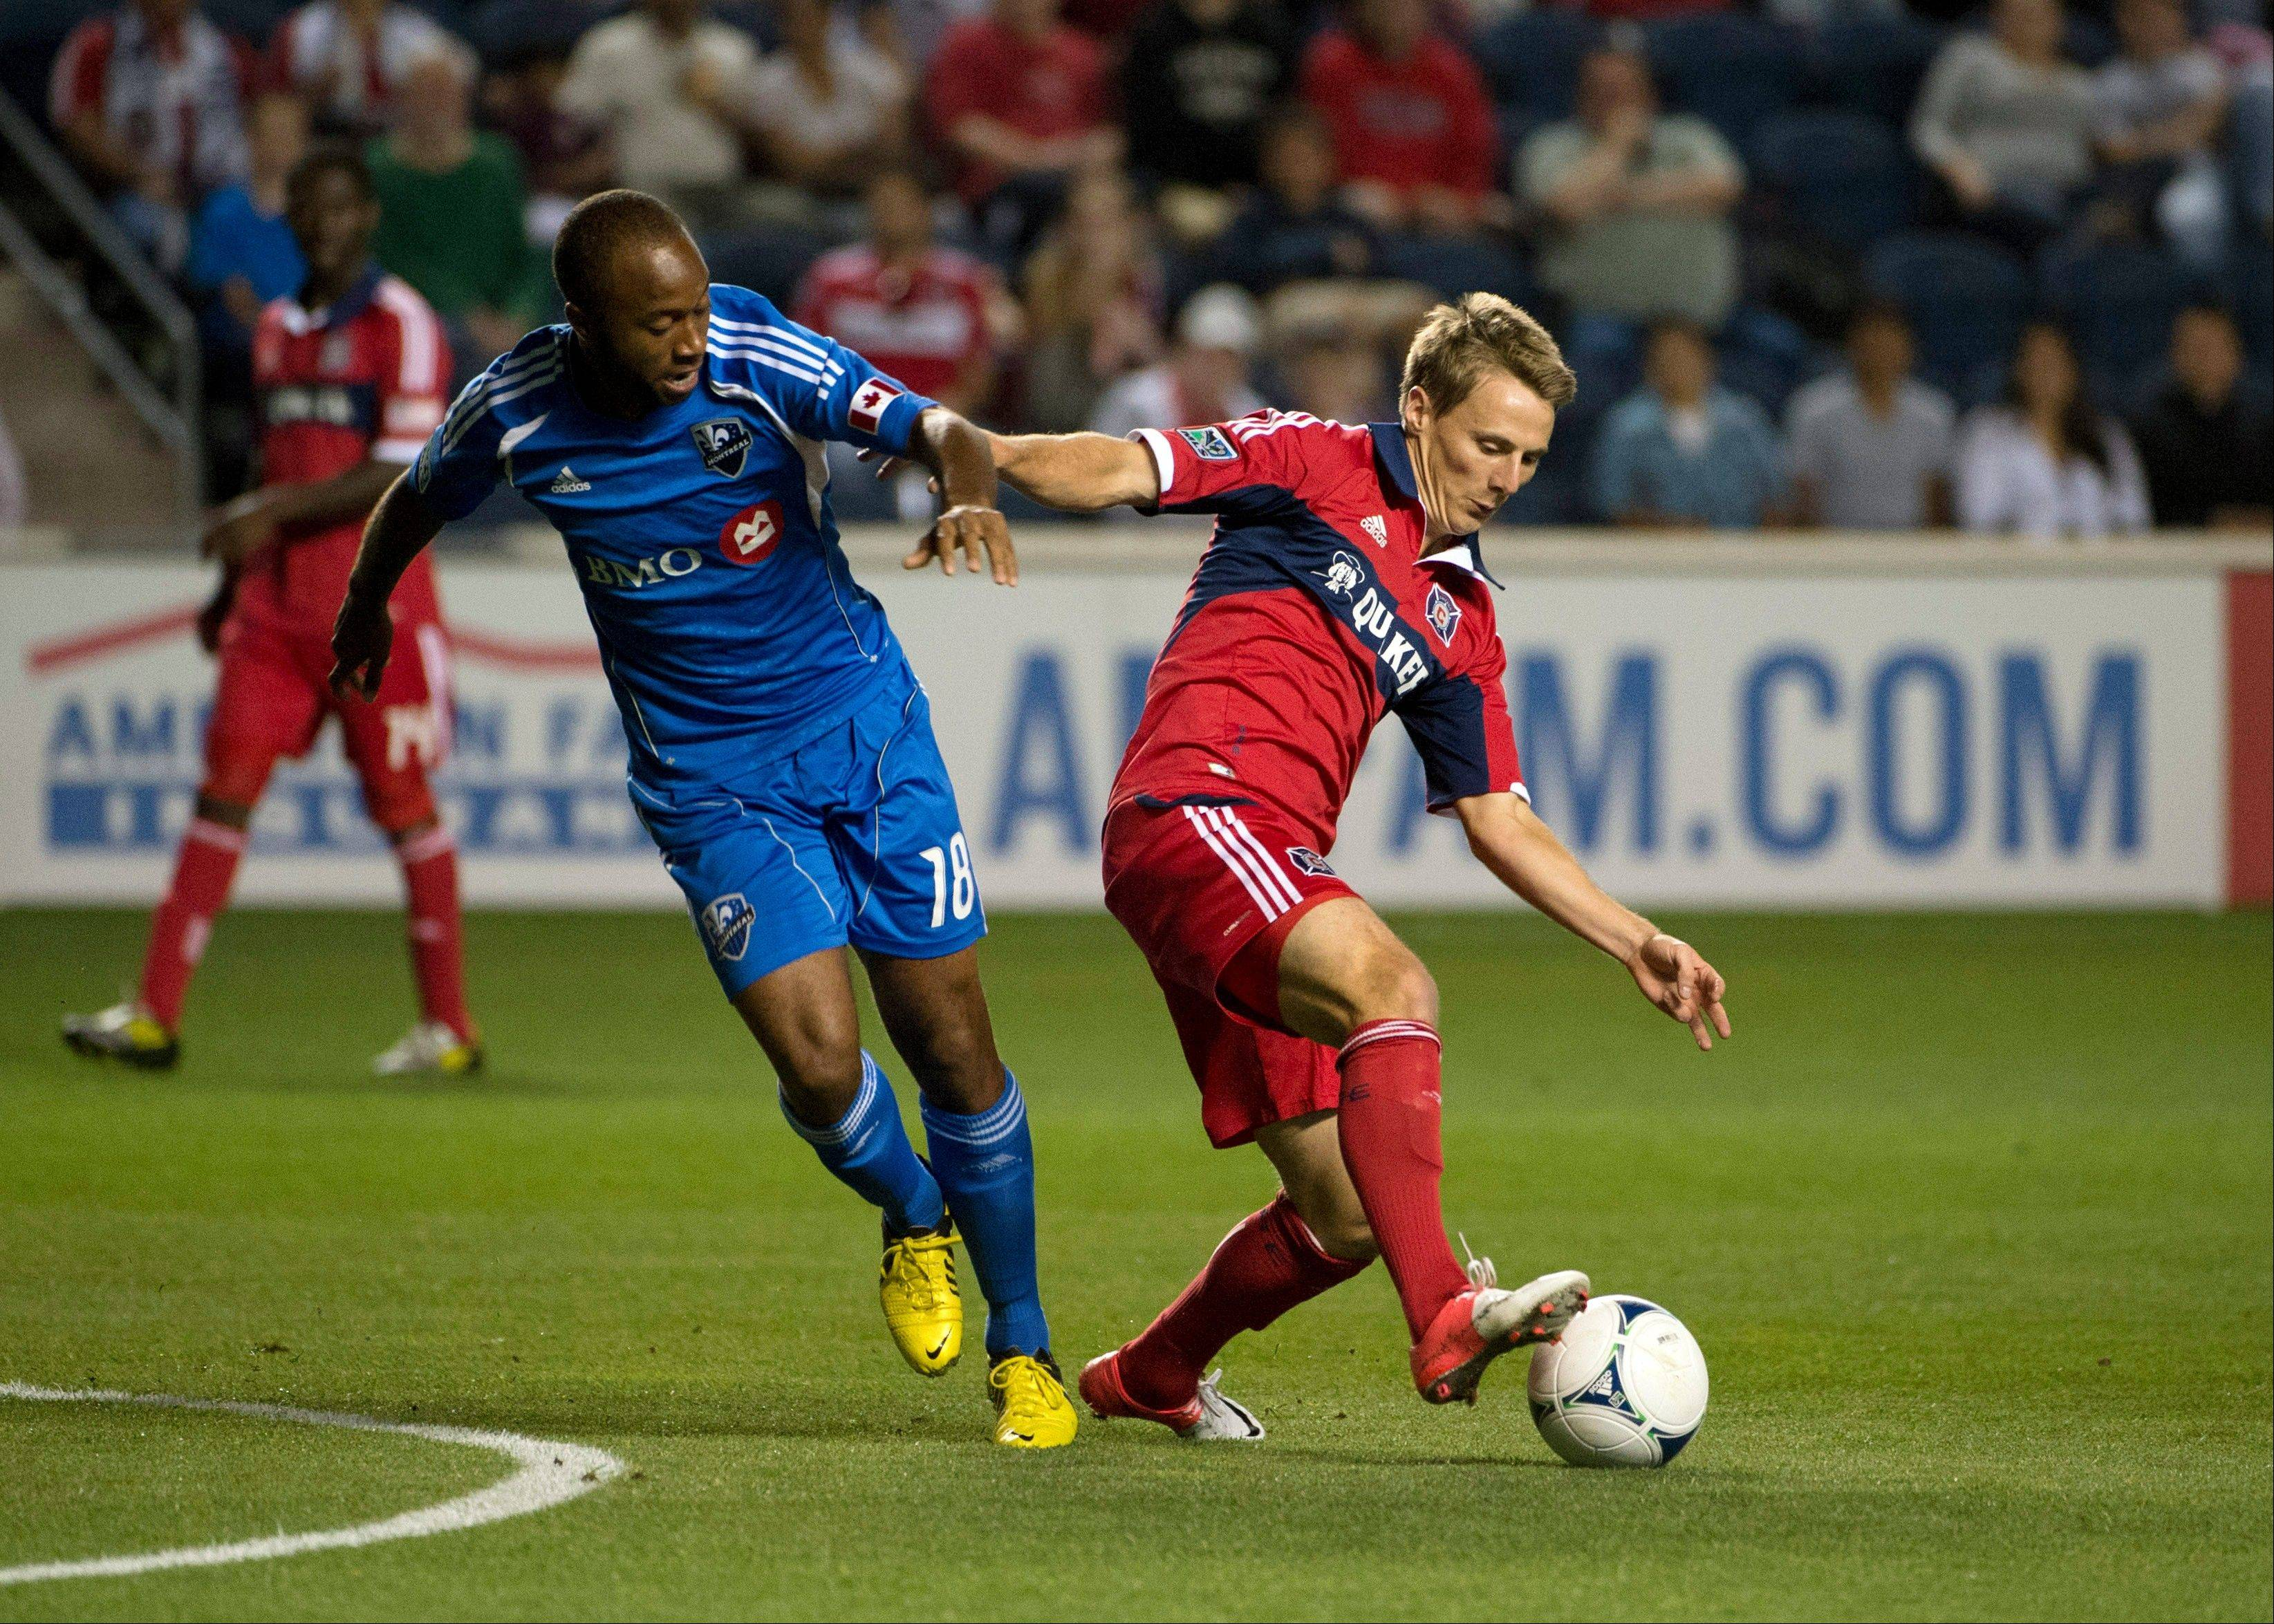 Montreal Impact midfielder Collen Warner, left, and Chicago Fire forward Chris Rolfe vie for the ball during the first half of a soccer match, Saturday, Sept. 15, 2012 in Bridgeview, Ill.